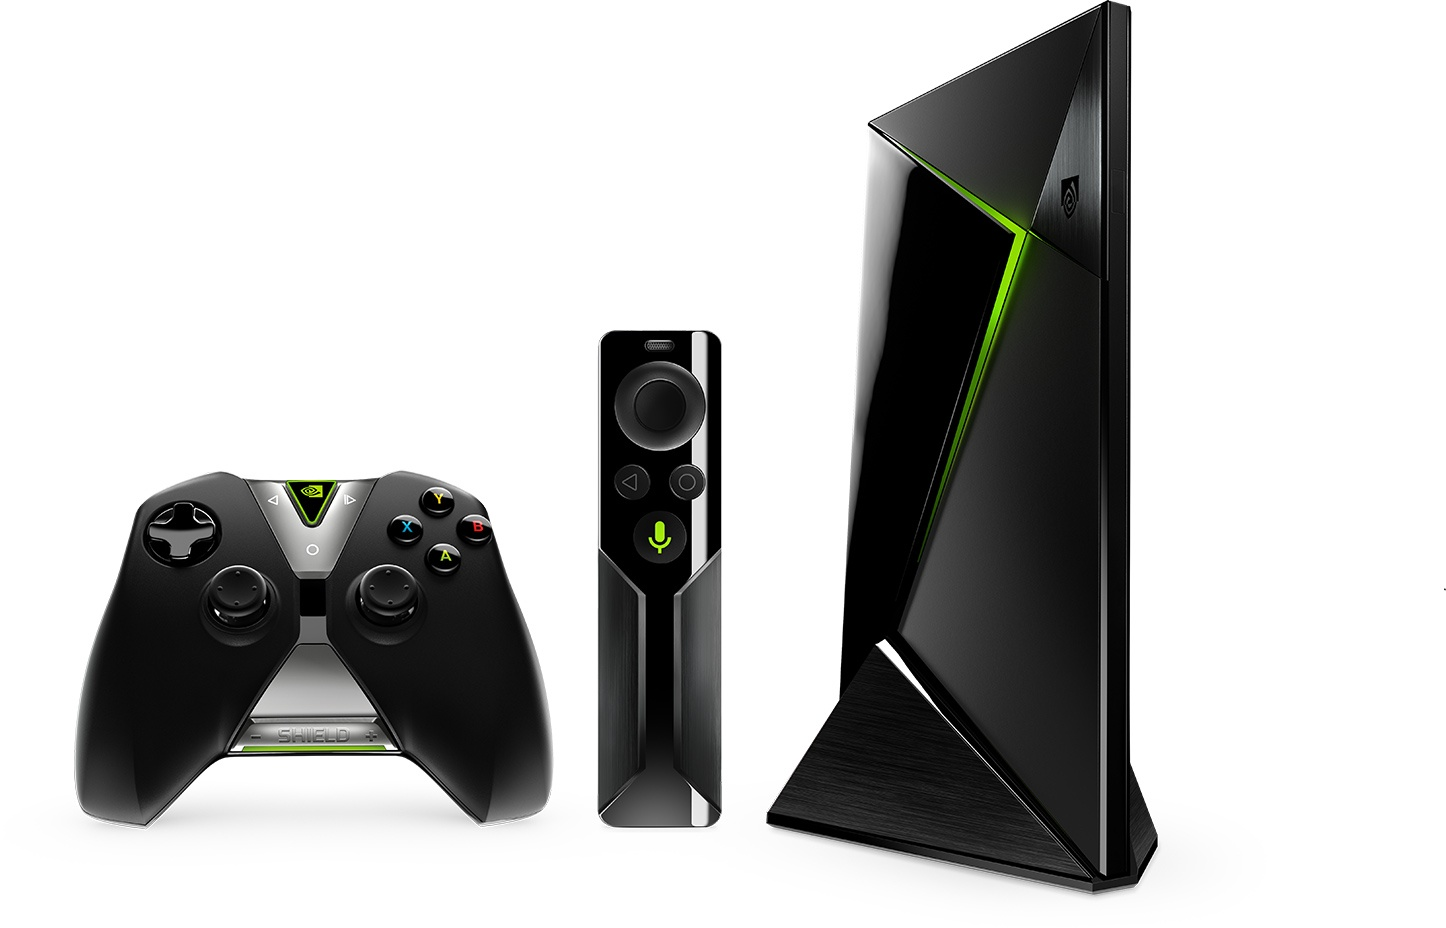 NVIDIA Shield Android TV, with controller and remote.